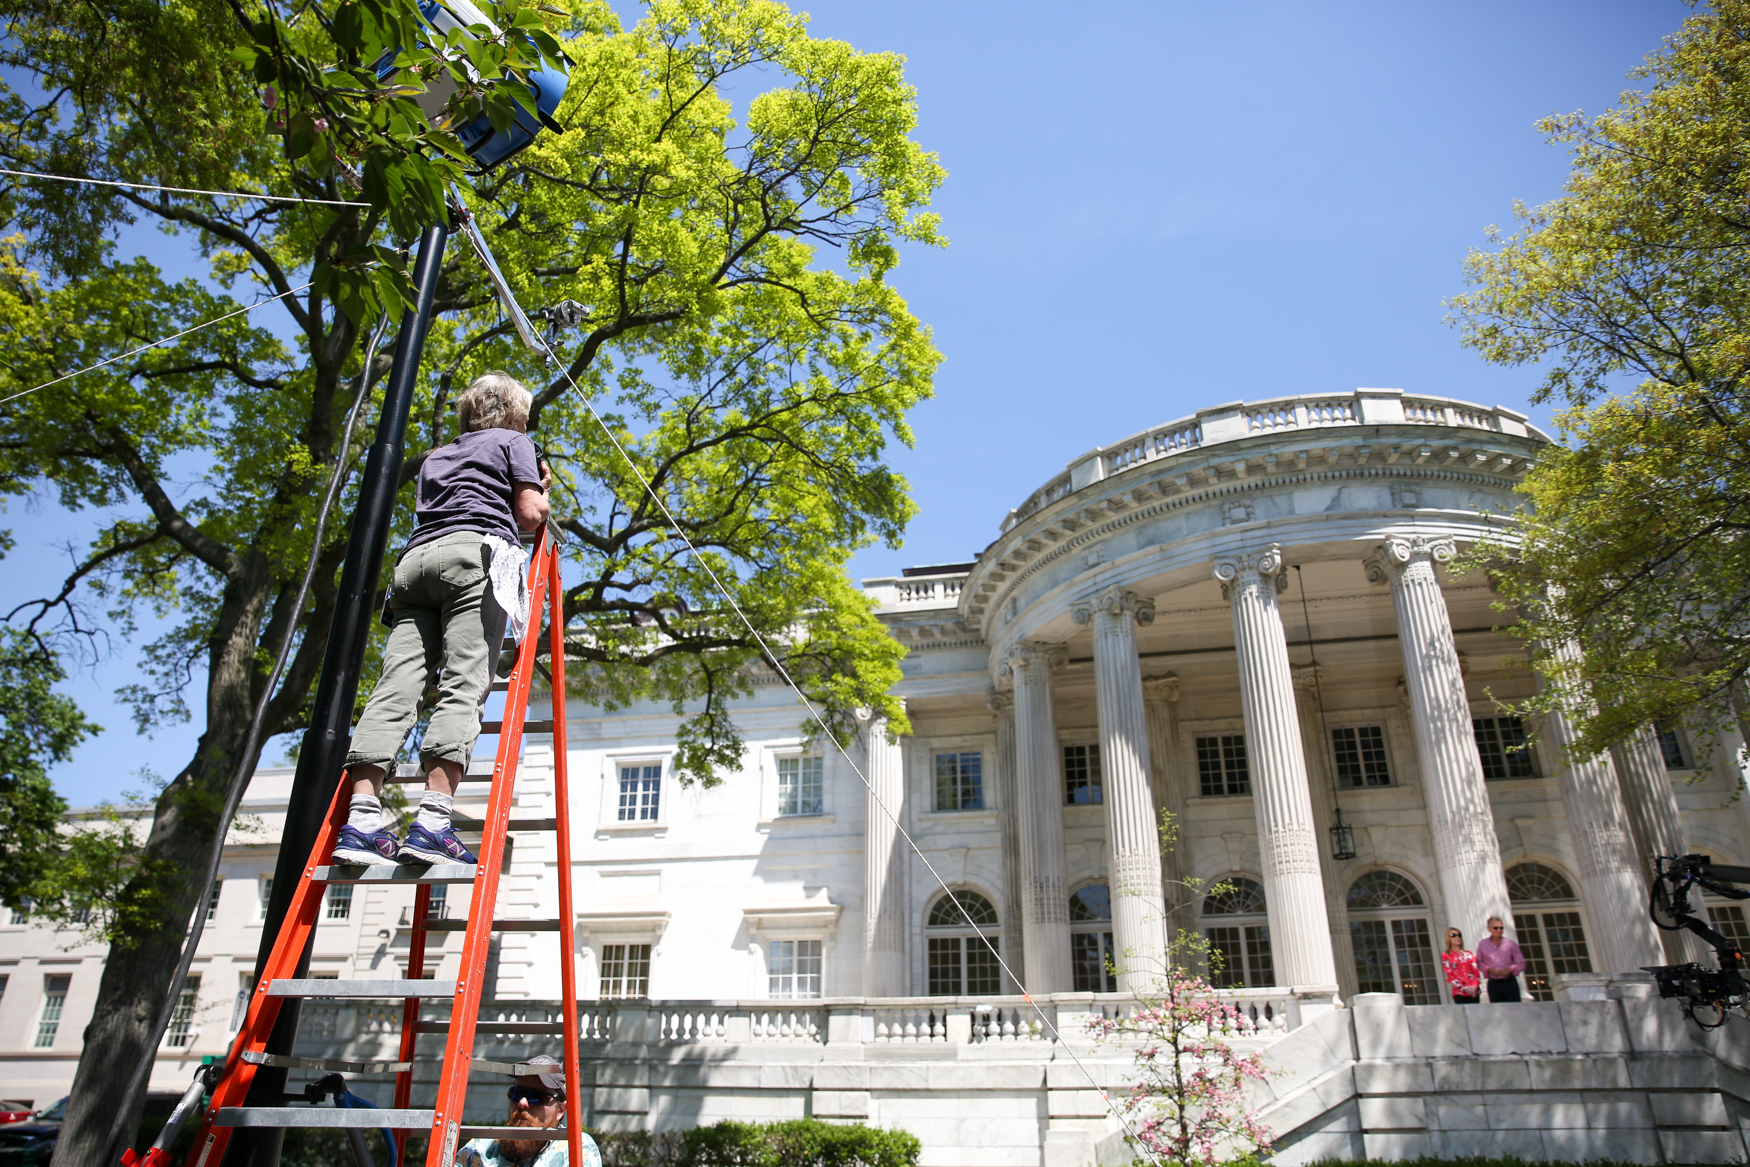 A photographer waits for the perfect shot during a promotion taping at DAR Hall.{ }(Photo by DC Refined)